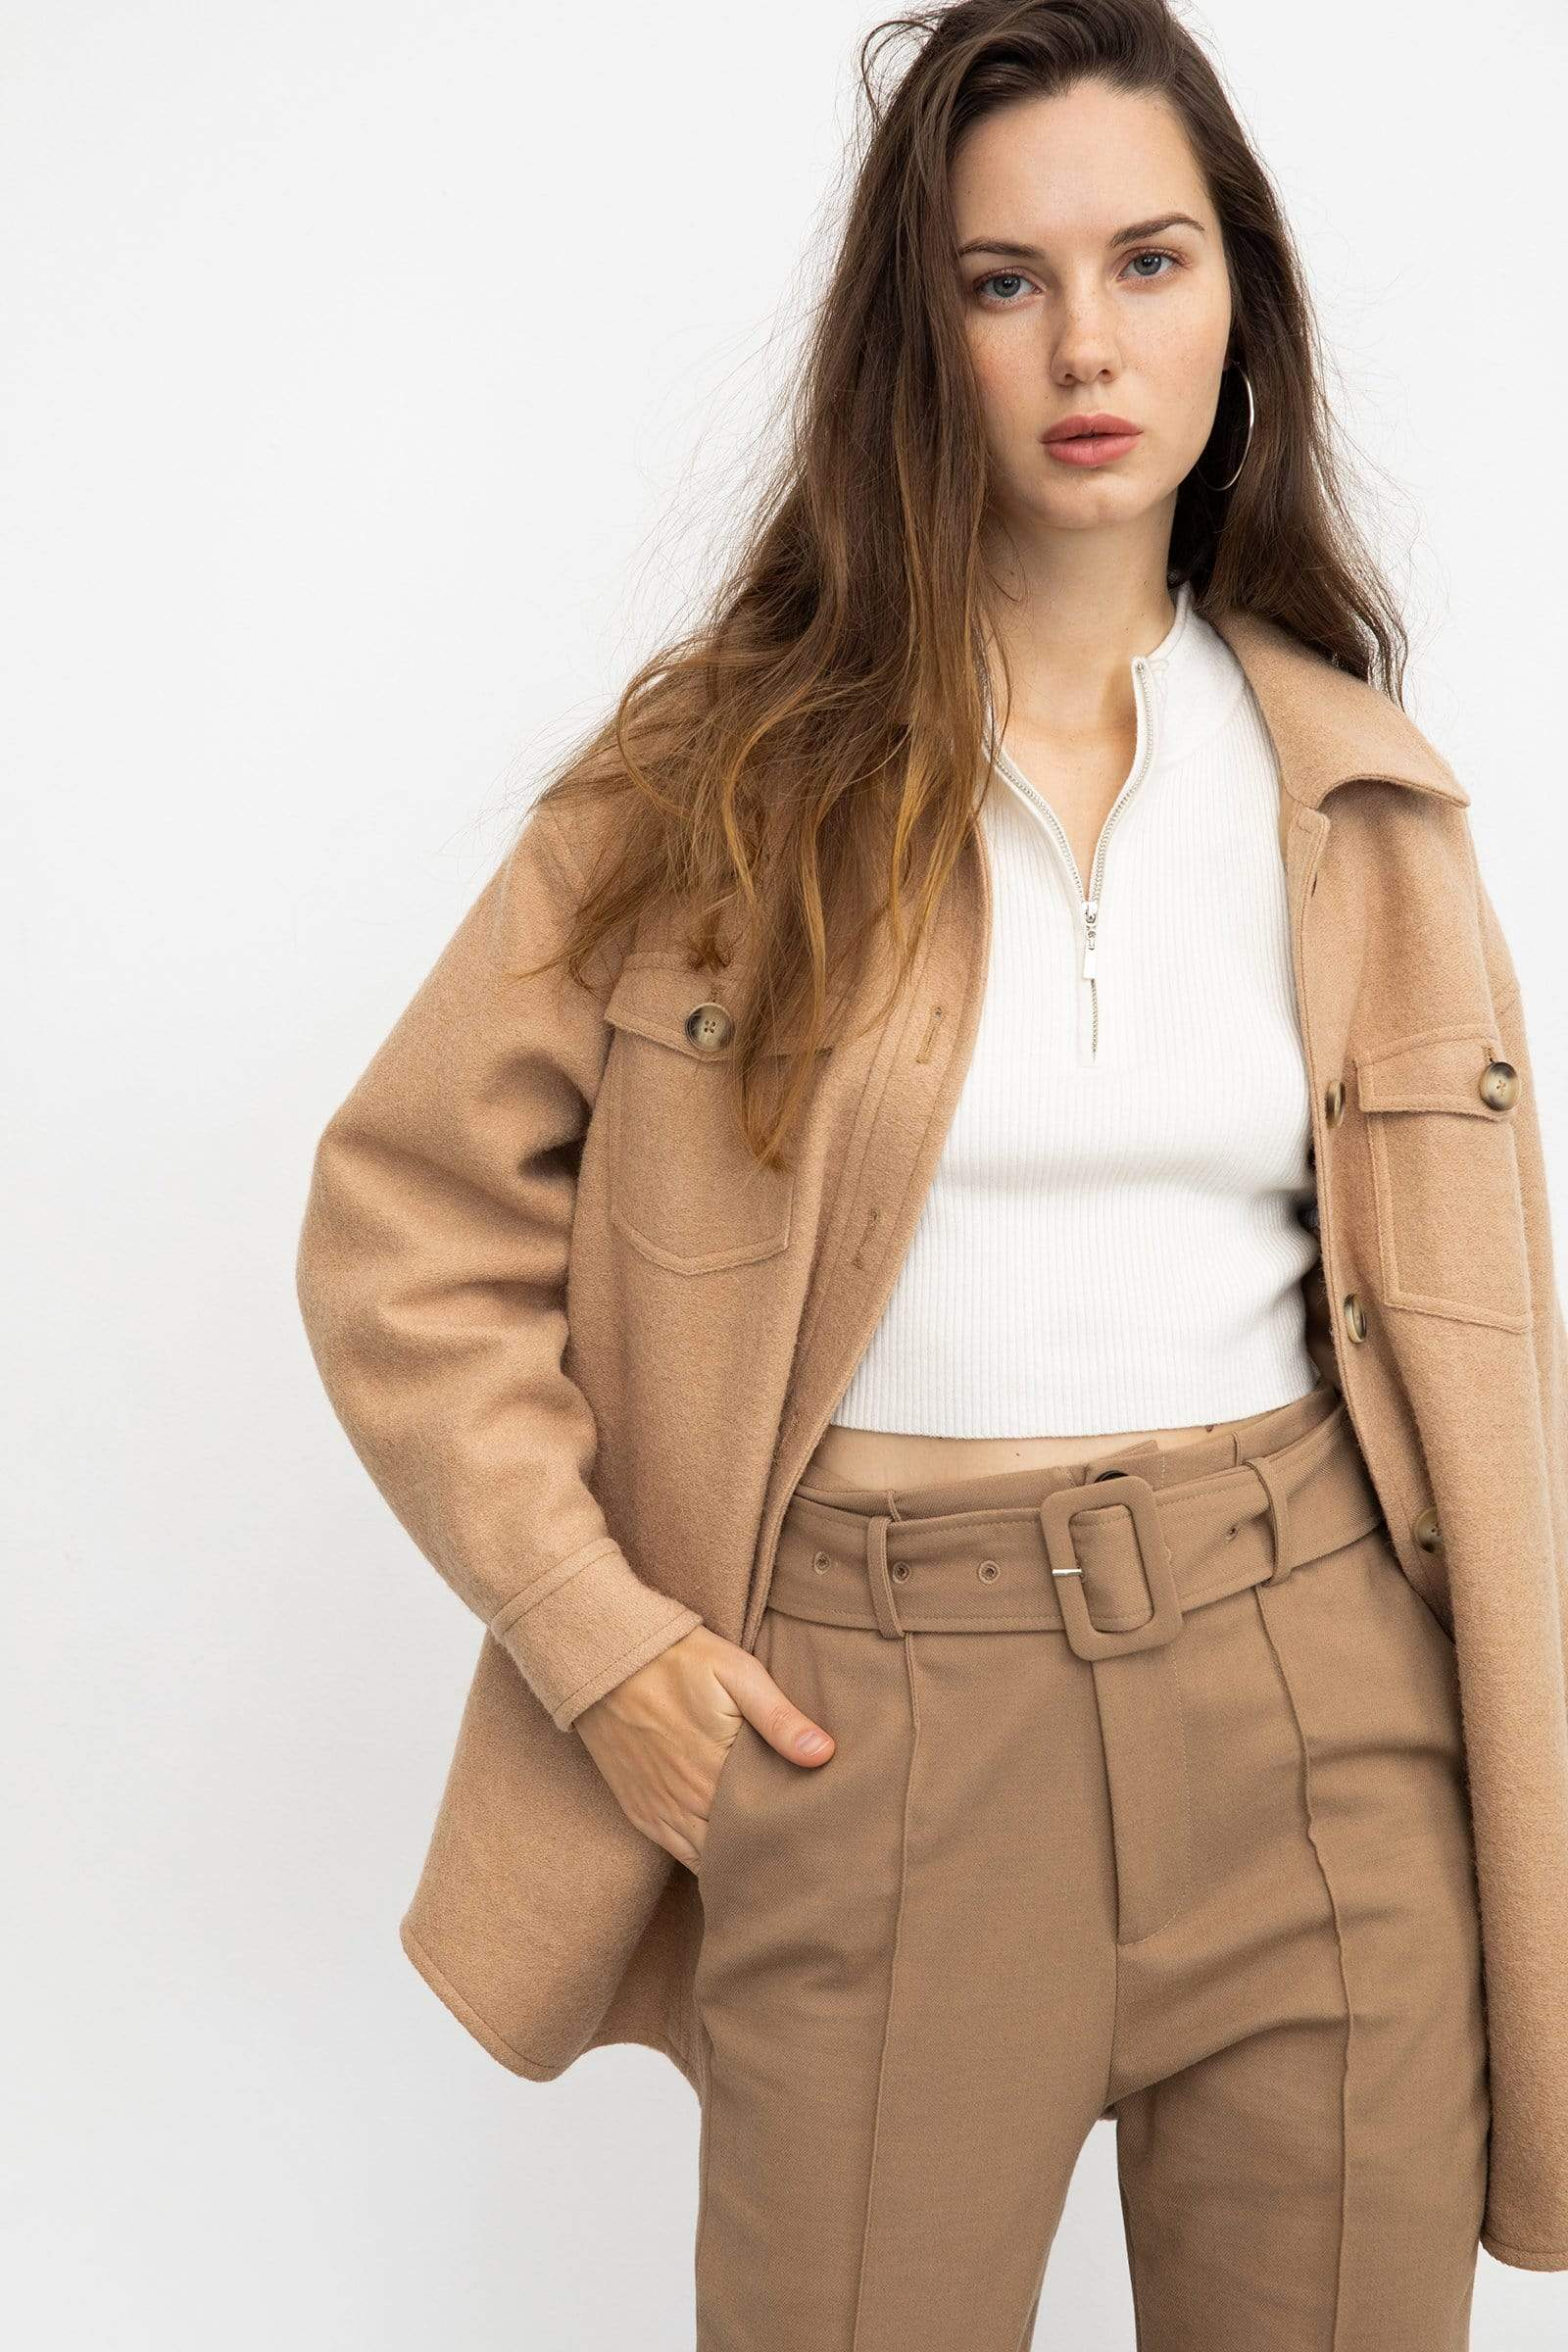 Sage Tan Longline Shacket